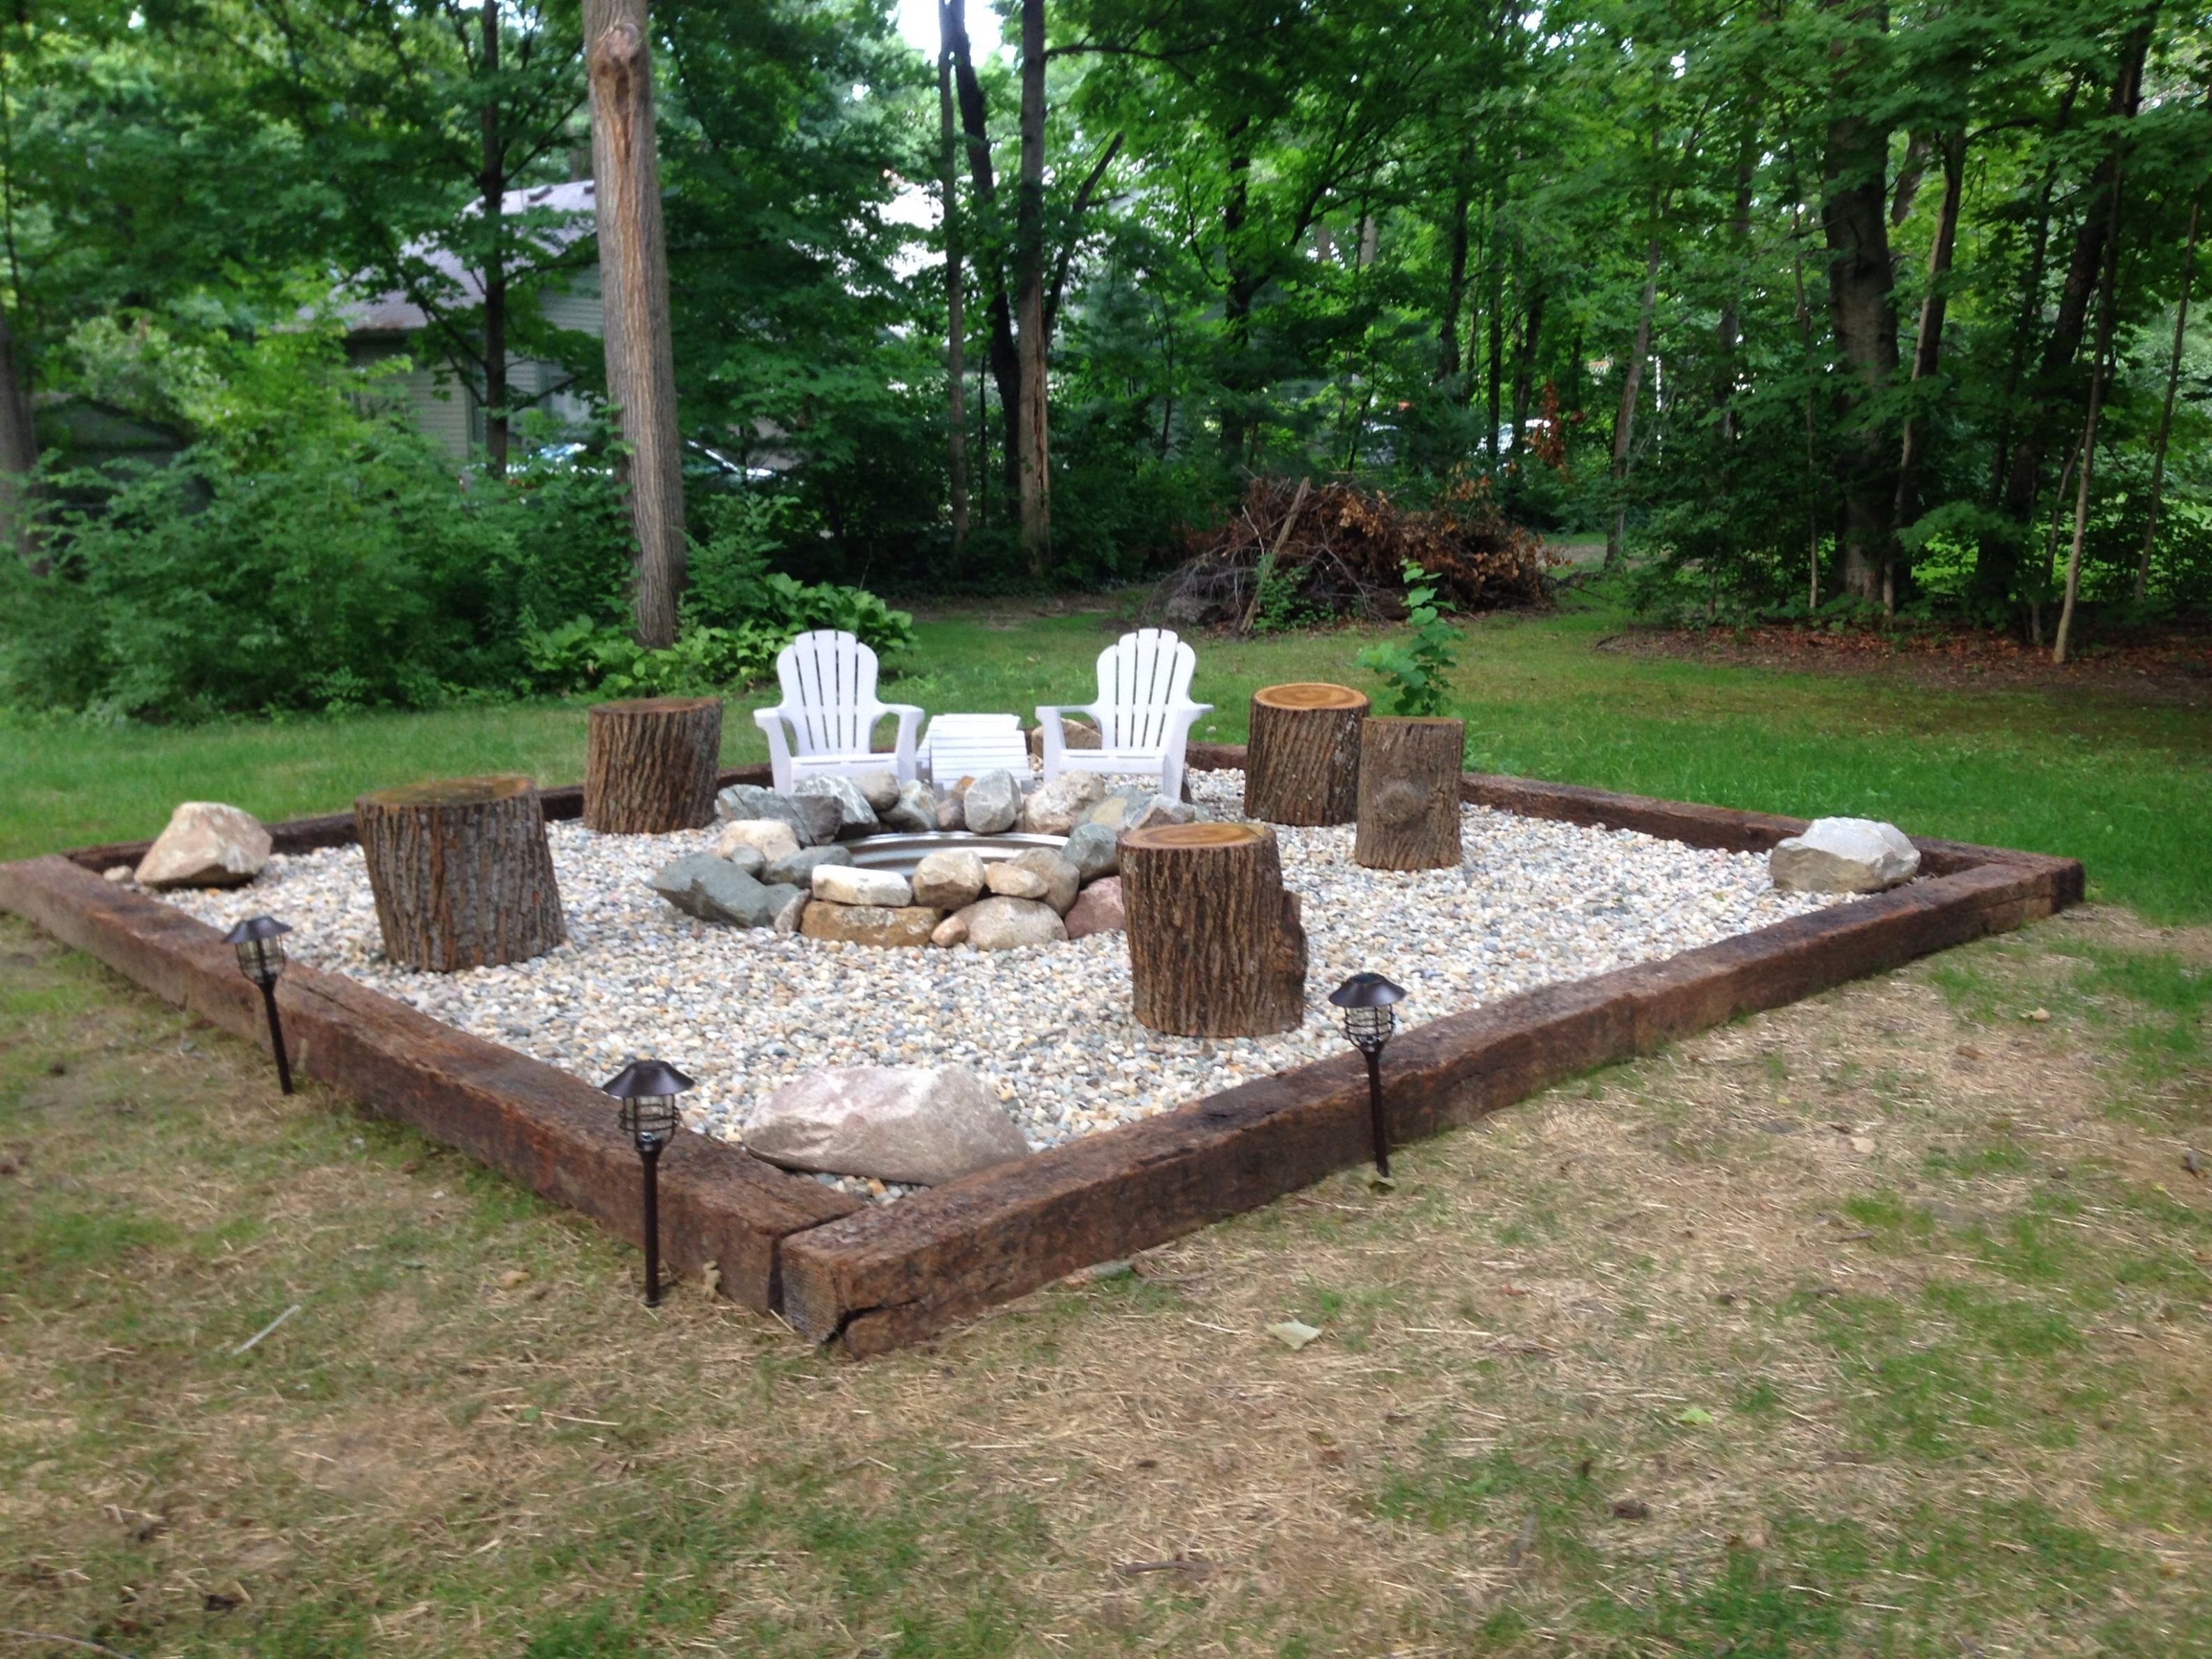 10 Spectacular Do It Yourself Fire Pit Ideas 15 outstanding cinder block fire pit design ideas for outdoor fire 2021